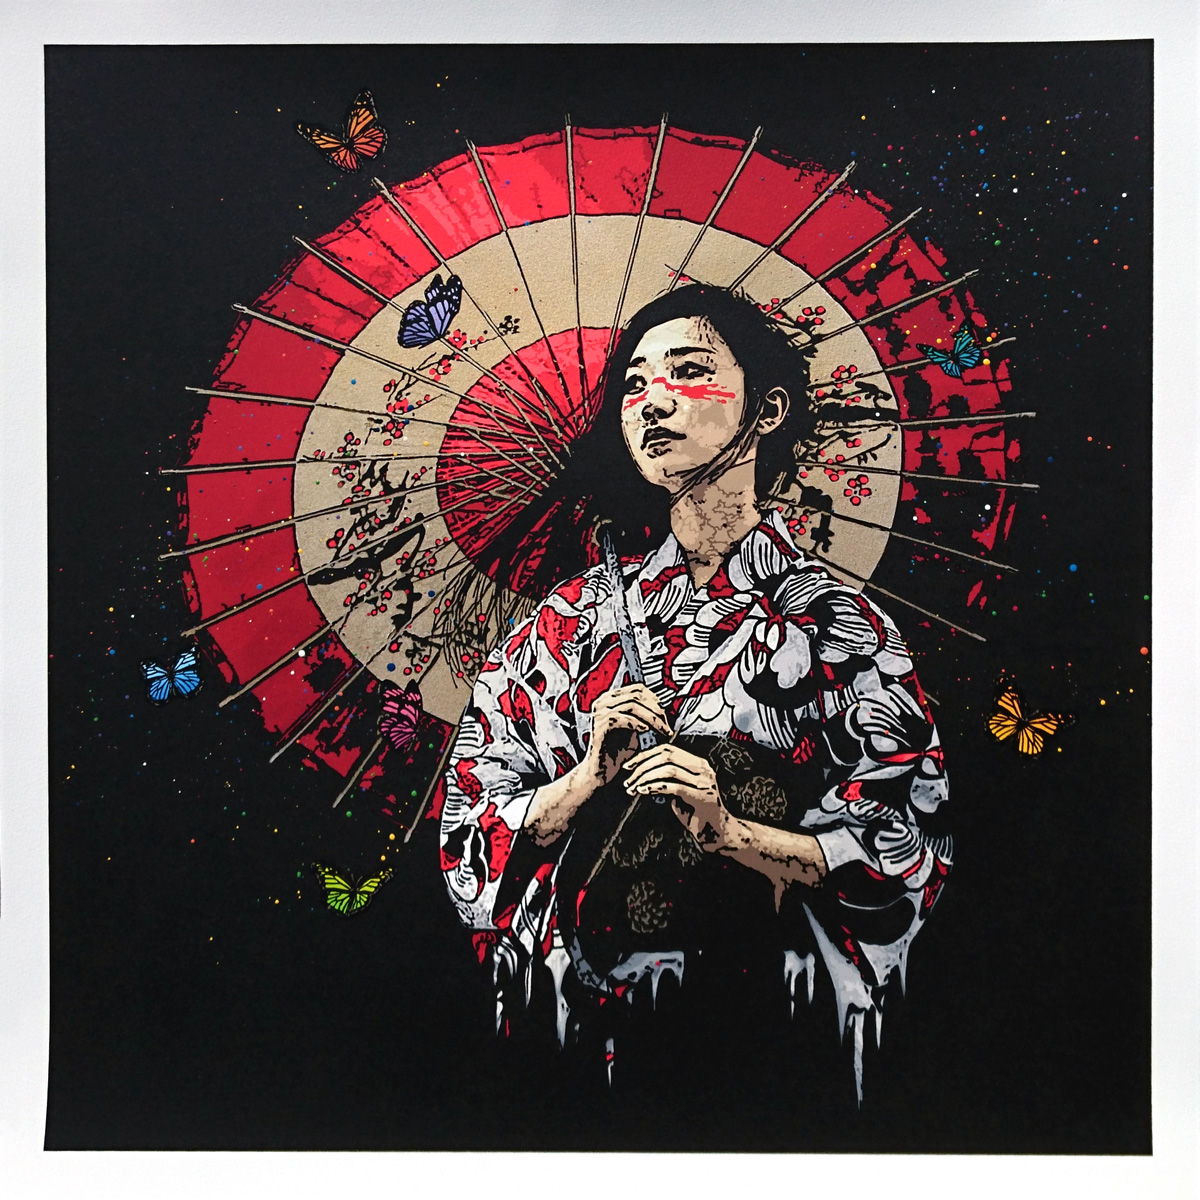 """Nadeshiko"" by Roamcouch.  25"" x 25"" 40-color Screenprint, hand-finished.  Ed of 5 S/N.  $500 (Gold)"